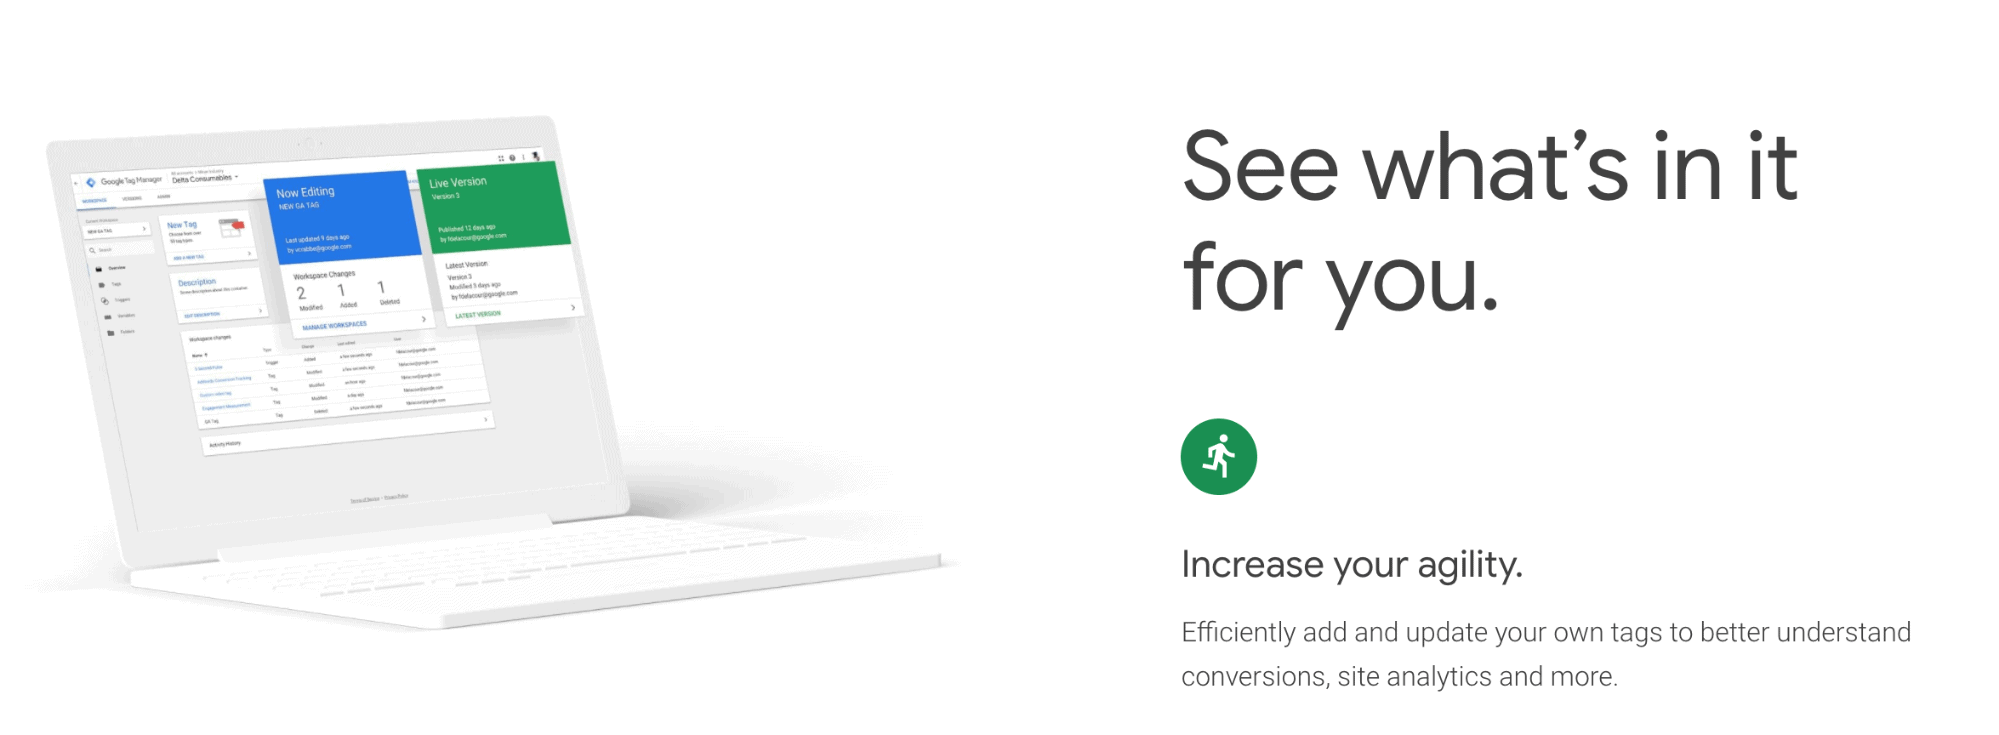 Google Tag Manager Landing Page Snippet